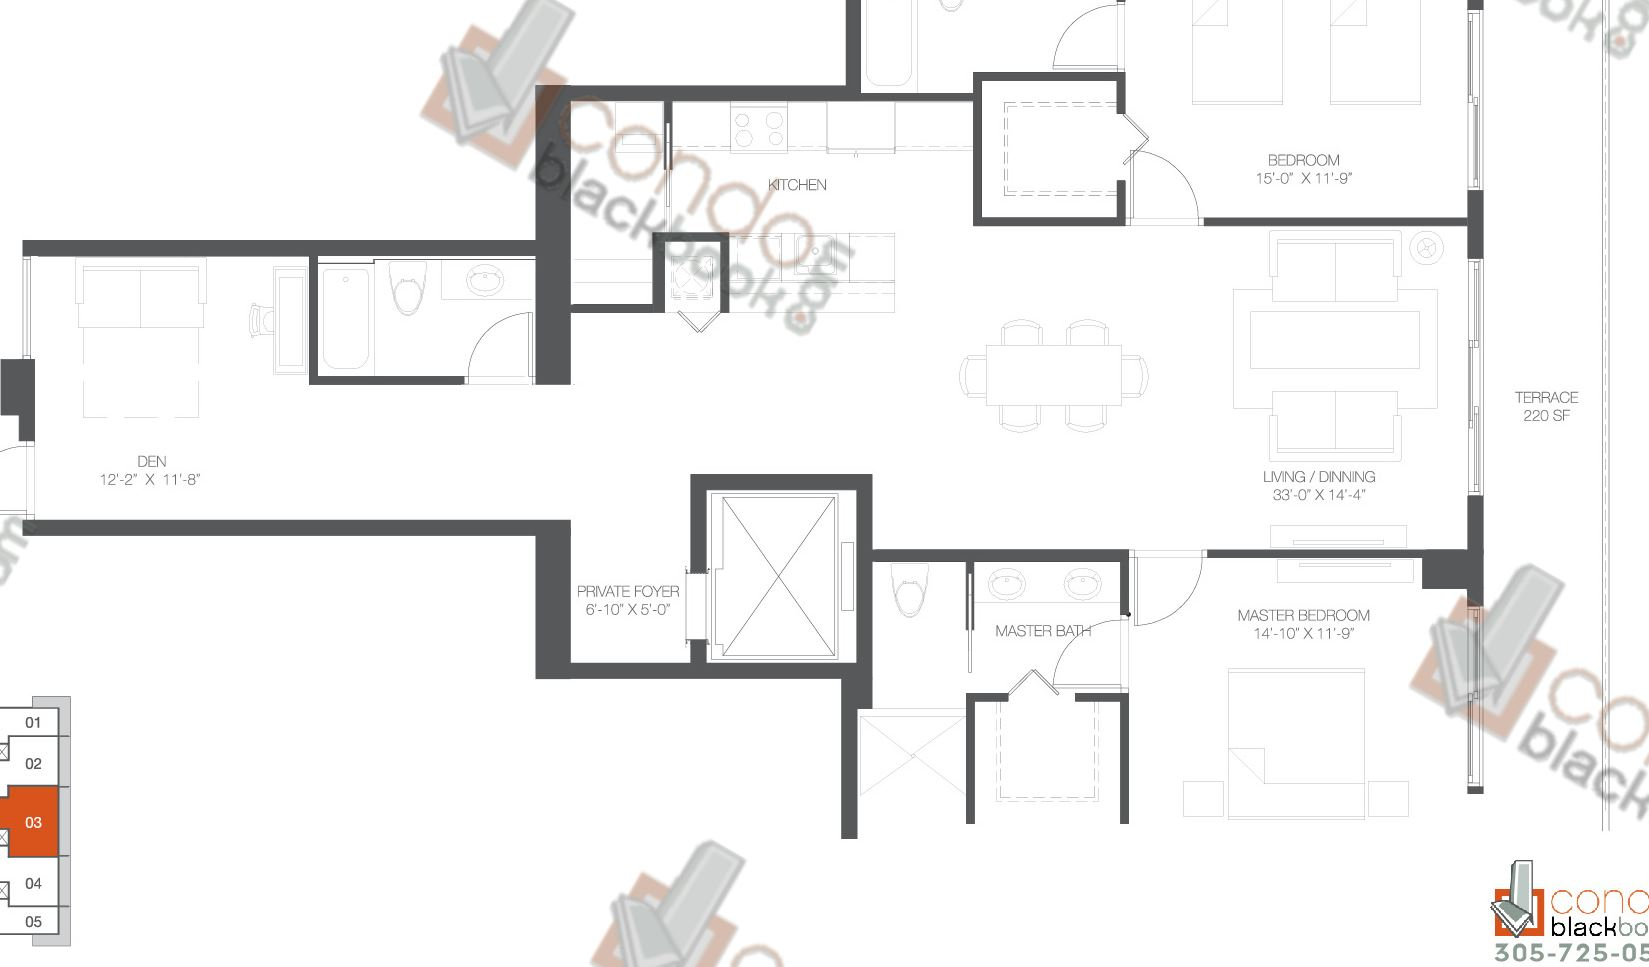 Floor plan for Bay House Edgewater Miami, model Residence 03, line 03, 2+Den/3 bedrooms, 1,866 sq ft